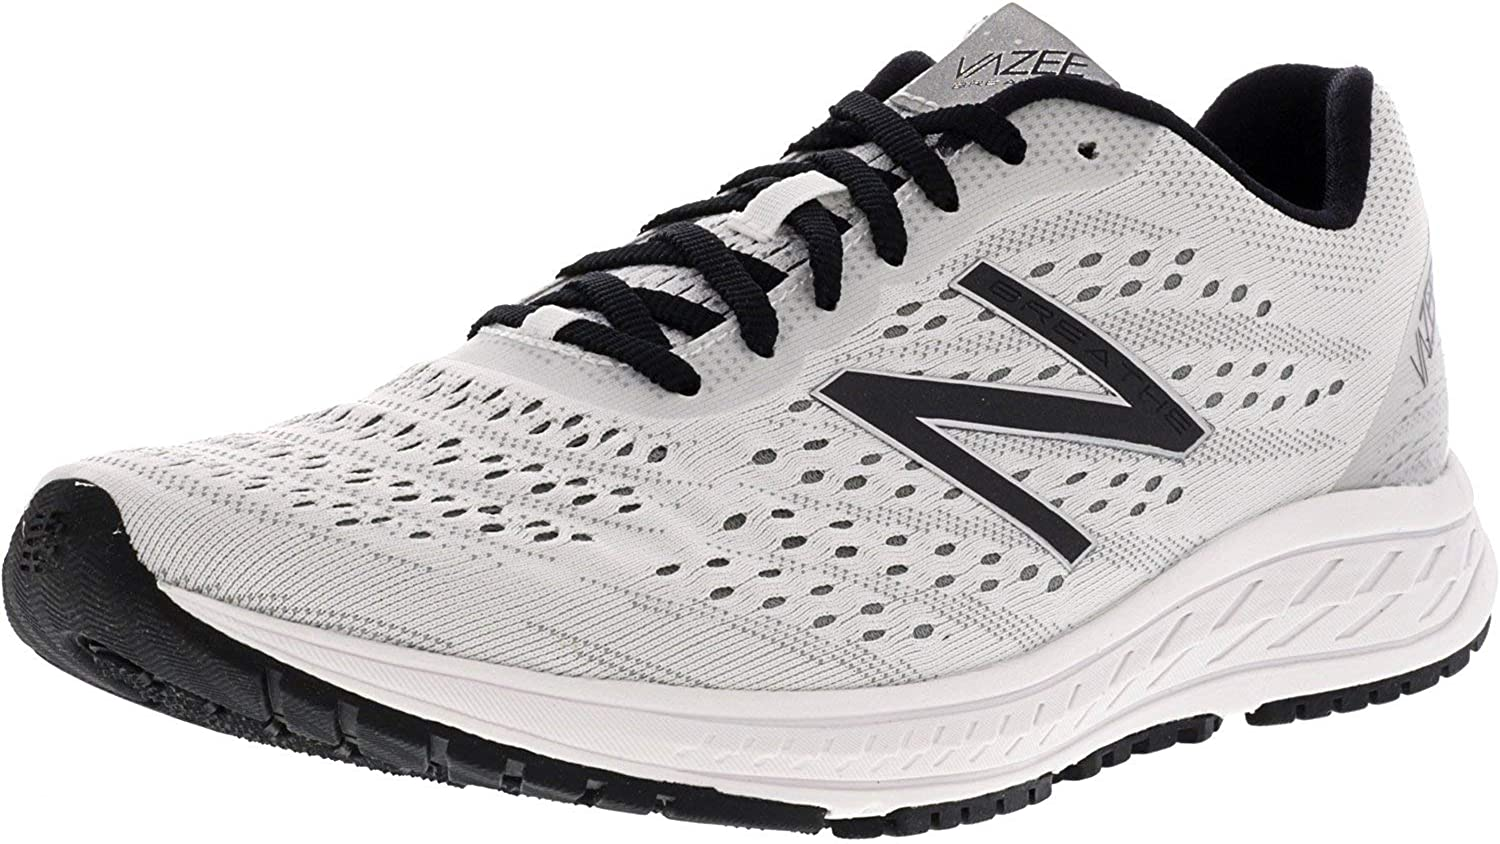 New Balance Vazee Breathe V2 Zapatillas para Correr - 45.5: Amazon.es: Zapatos y complementos